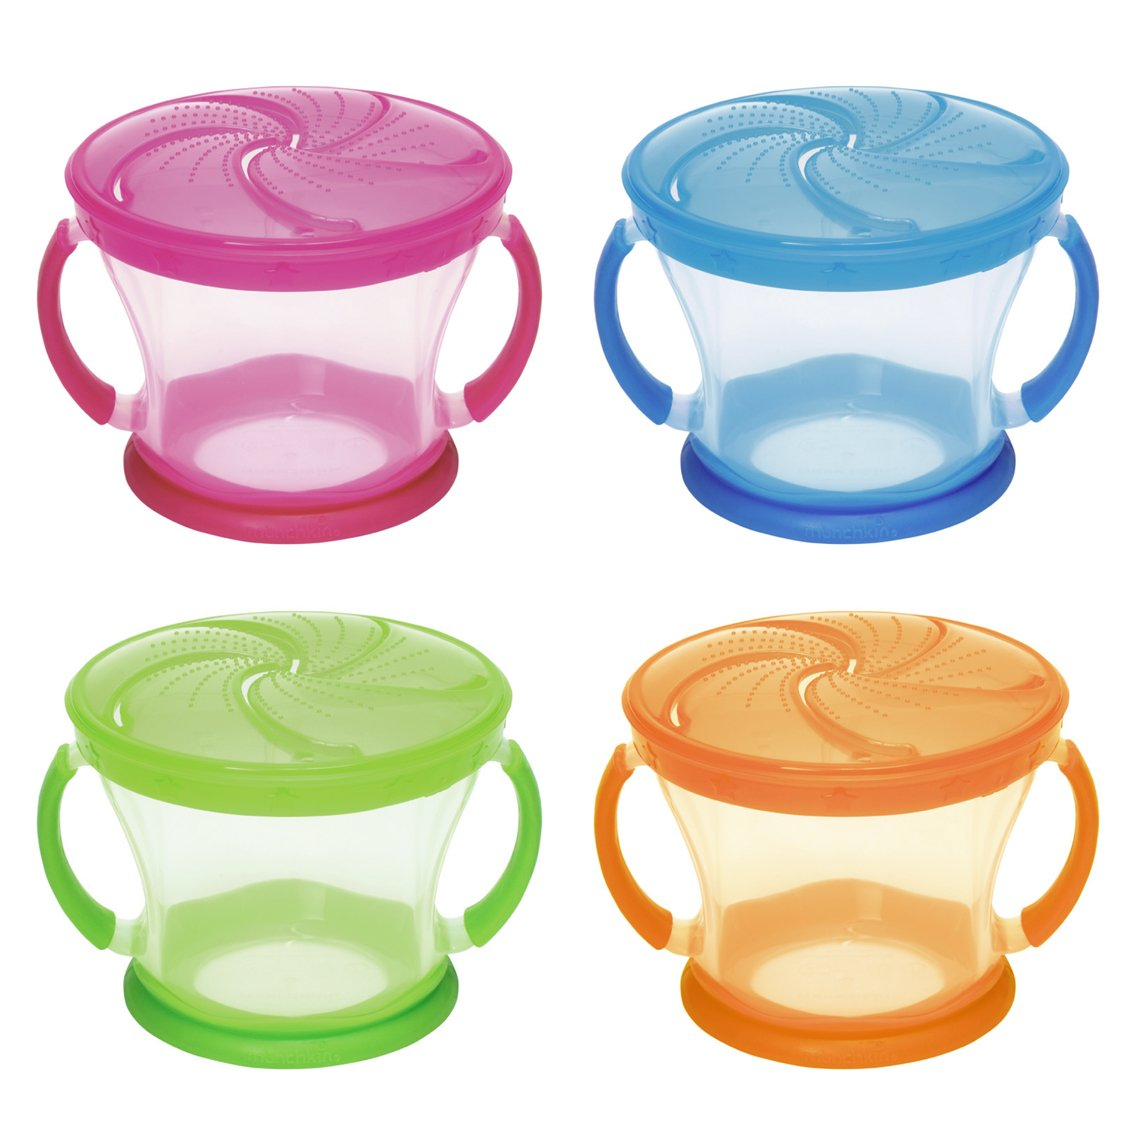 Munchkin Snack Container with Twist-On, Stay Put Lid - Assorted Colours 011401